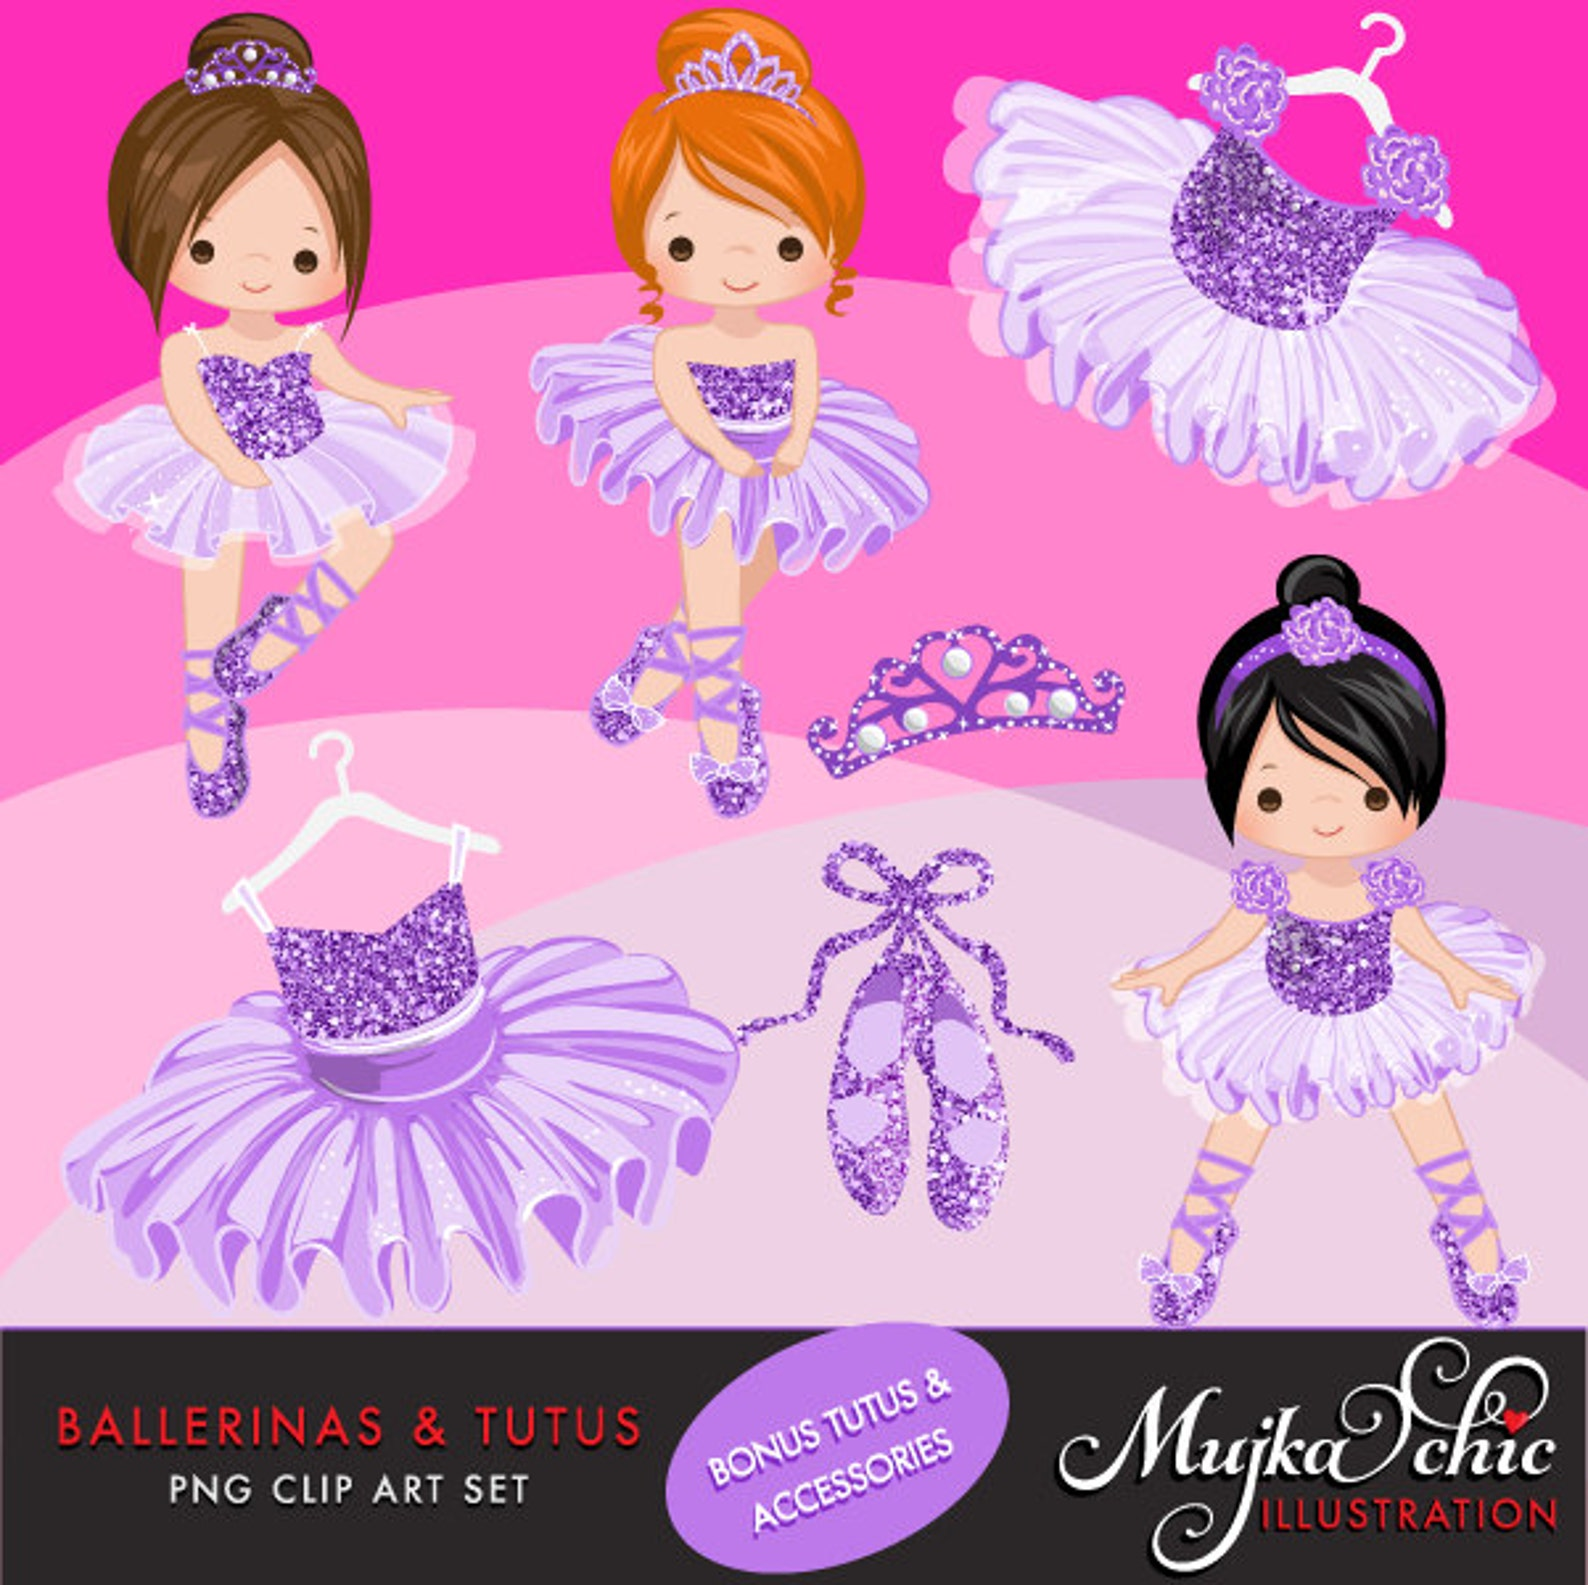 ballerinas and tutus purple glitter clipart with cute characters, purple tutus, ballet shoes graphics instant download ballerina